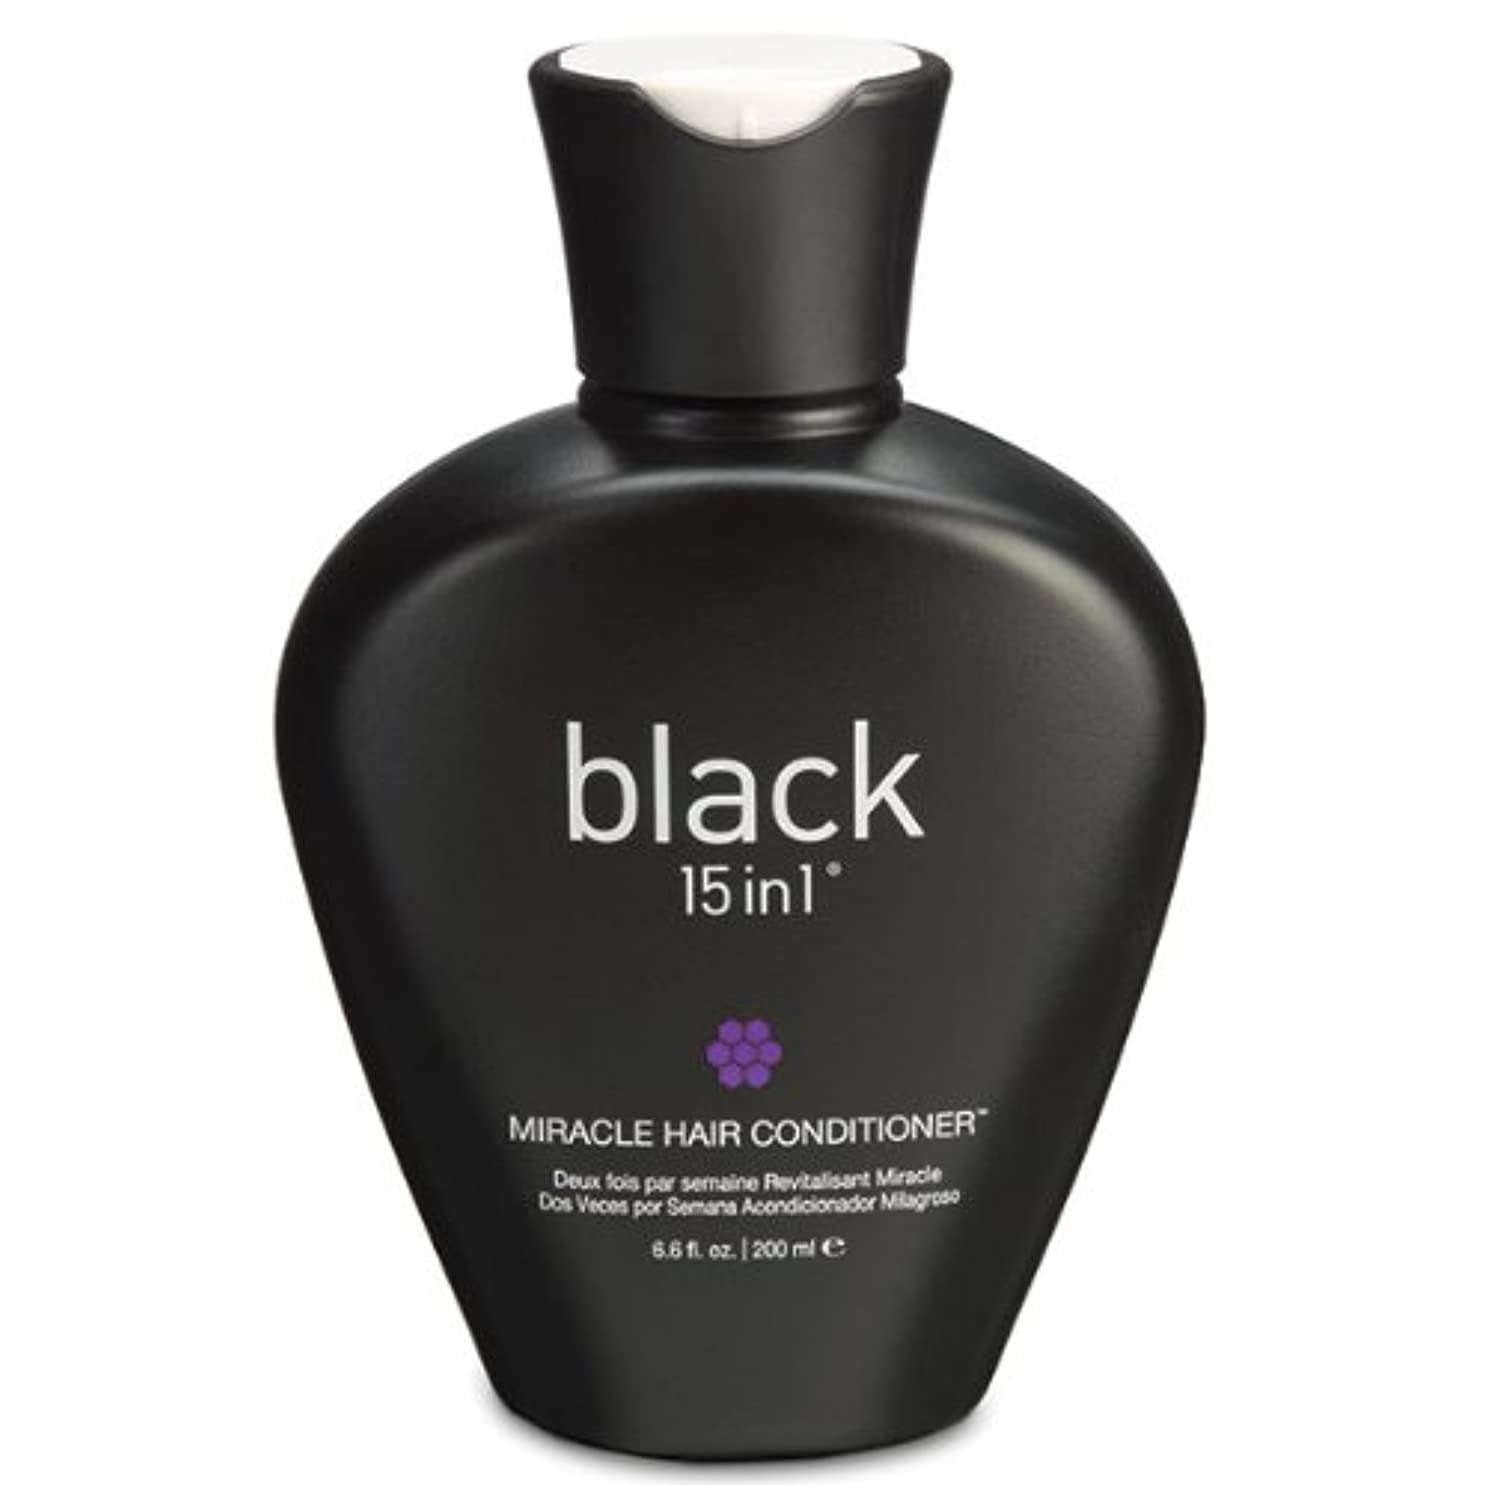 ニンニクテロ政治家のBlack 15in1 Miracle Hair Conditioner, 6.6 Ounce by black 15in1